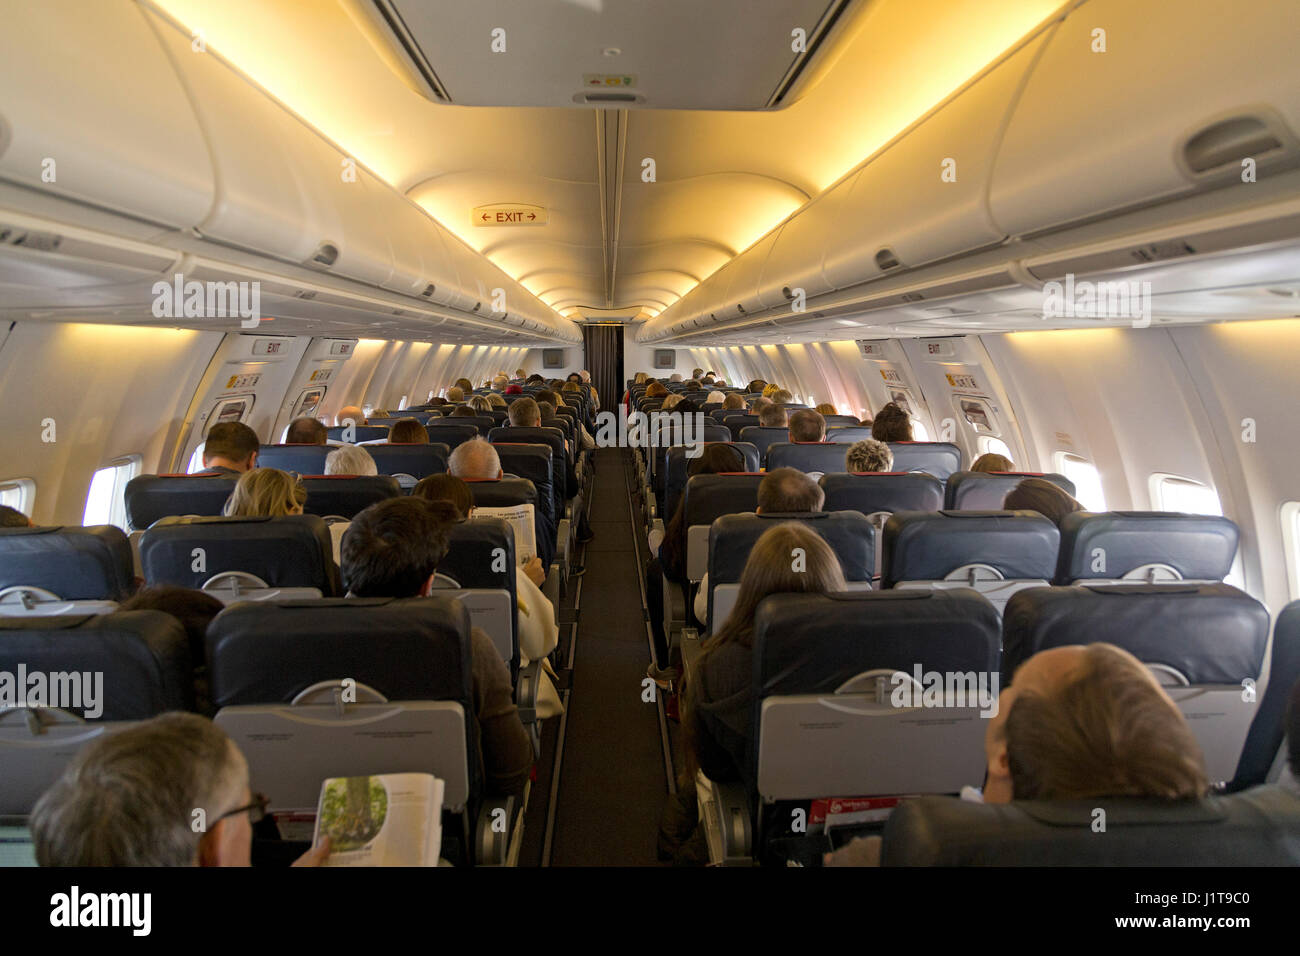 inside a plane from Berlin, Germany, to Palma de Mallorca shortly after takeoff - Stock Image